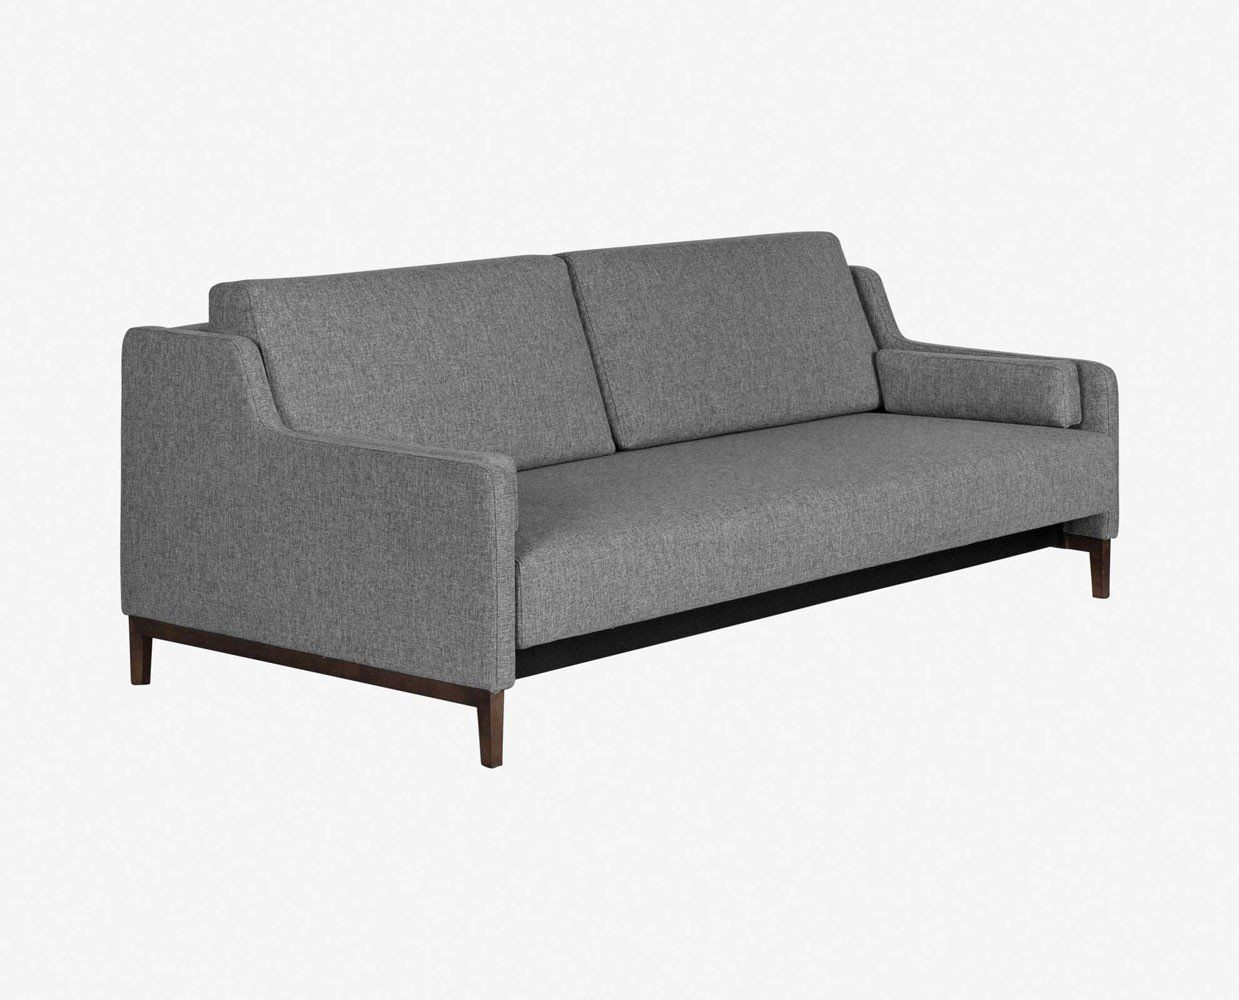 Queen Convertible Sofa Scandinavian Designs